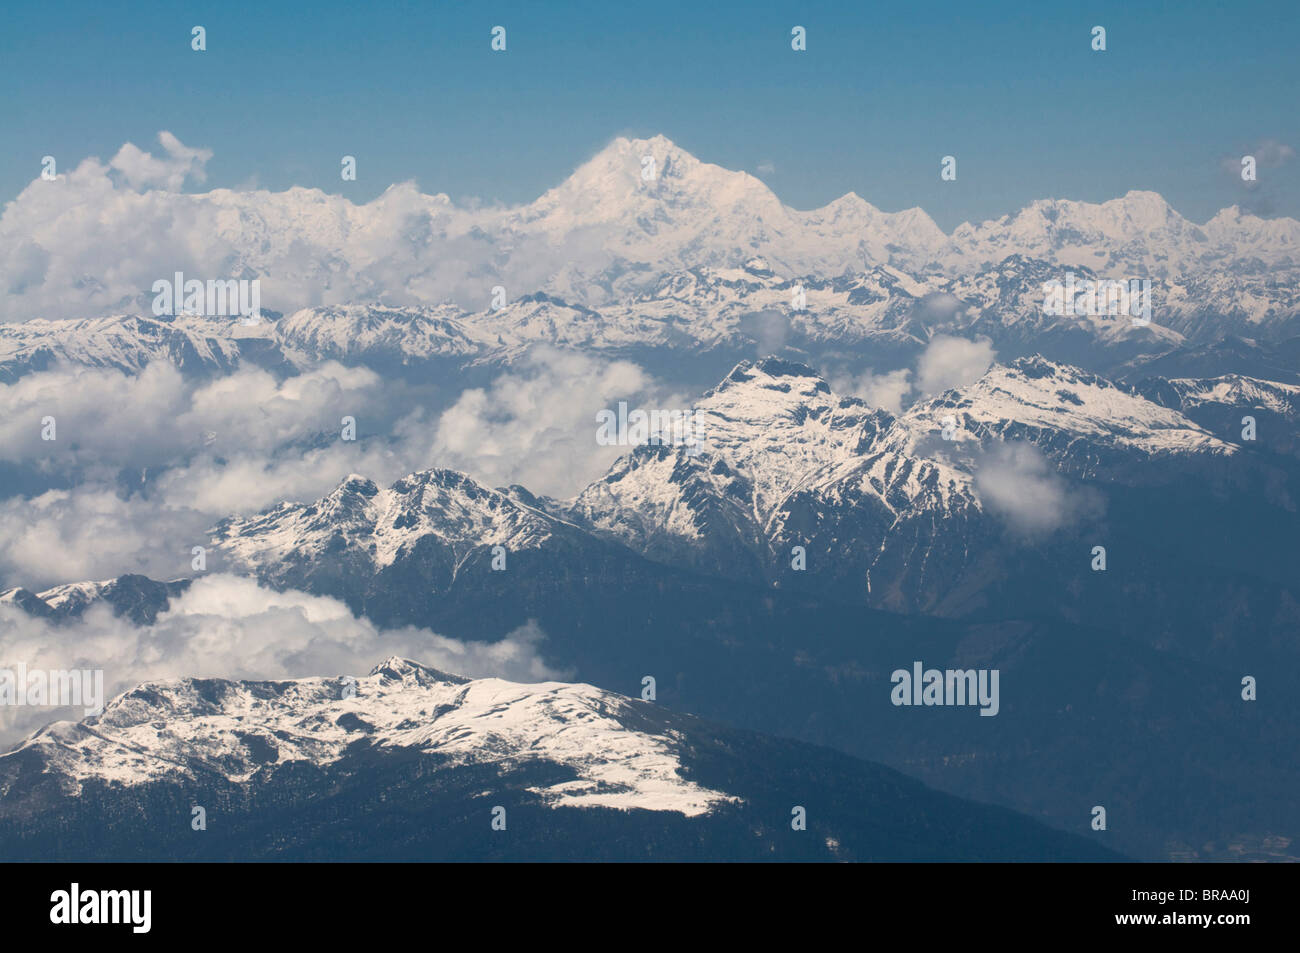 Aerial photo of the Himalayas with the world's third highest mountain, Kanchenjunga, Bhutan, Asia - Stock Image